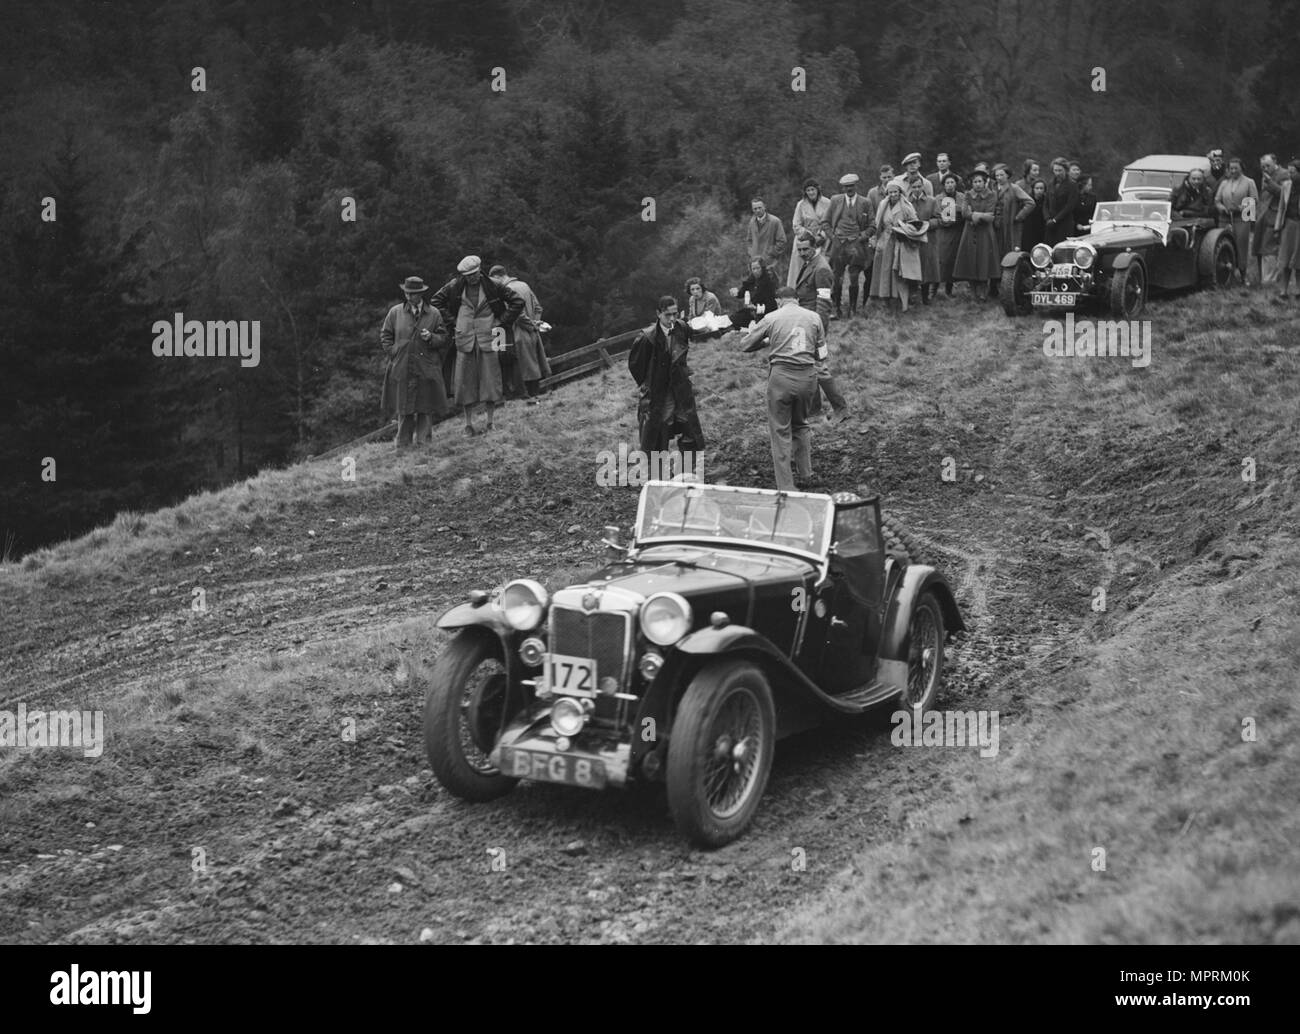 MG PA of D Clare competing in the MCC Edinburgh Trial, Roxburghshire, Scotland, 1938. Artist: Bill Brunell. - Stock Image